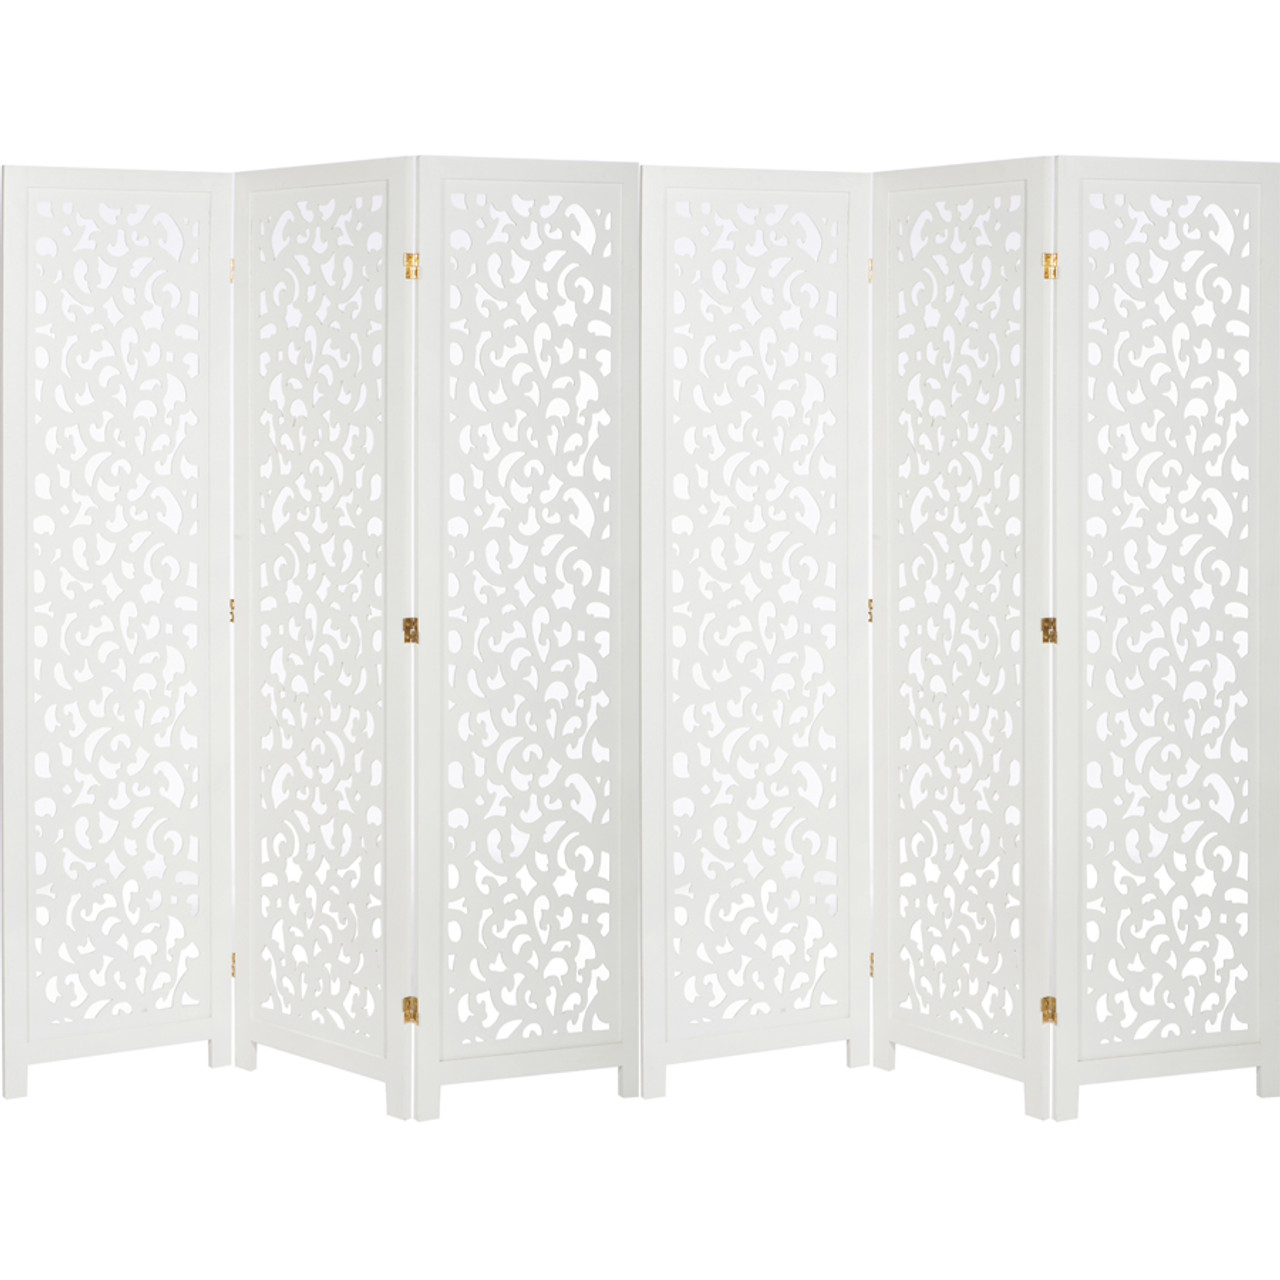 3 or 6 Panel Solid Wood Screen Room Divider, White Color With Decorative Cutouts